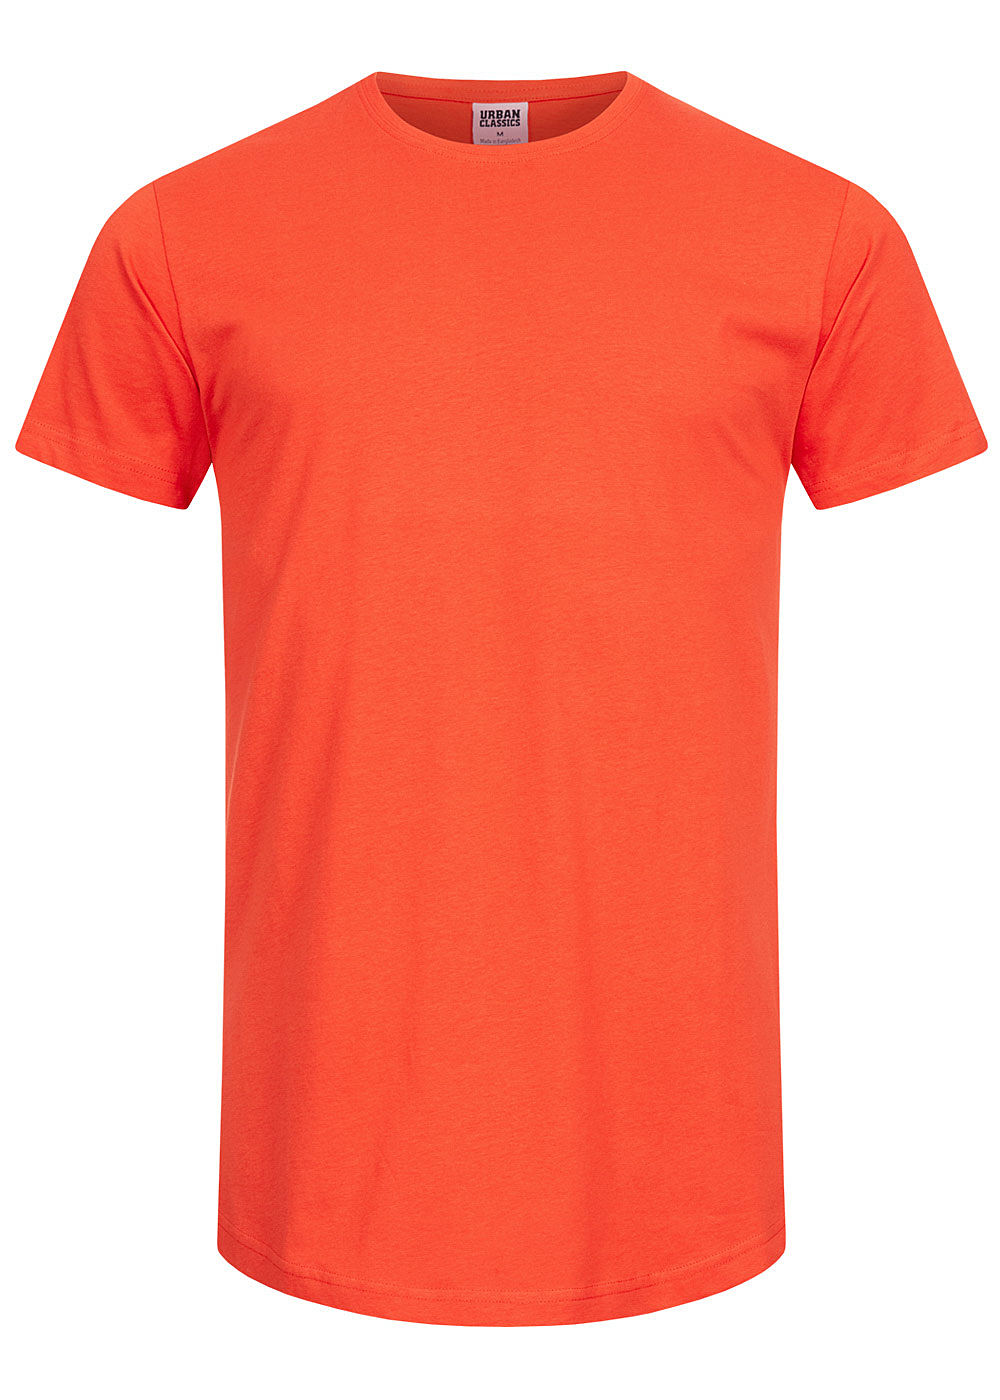 Seventyseven Lifestyle TB Herren Basic Shaped Long T-Shirt blood orange - Art.-Nr.: 19072900